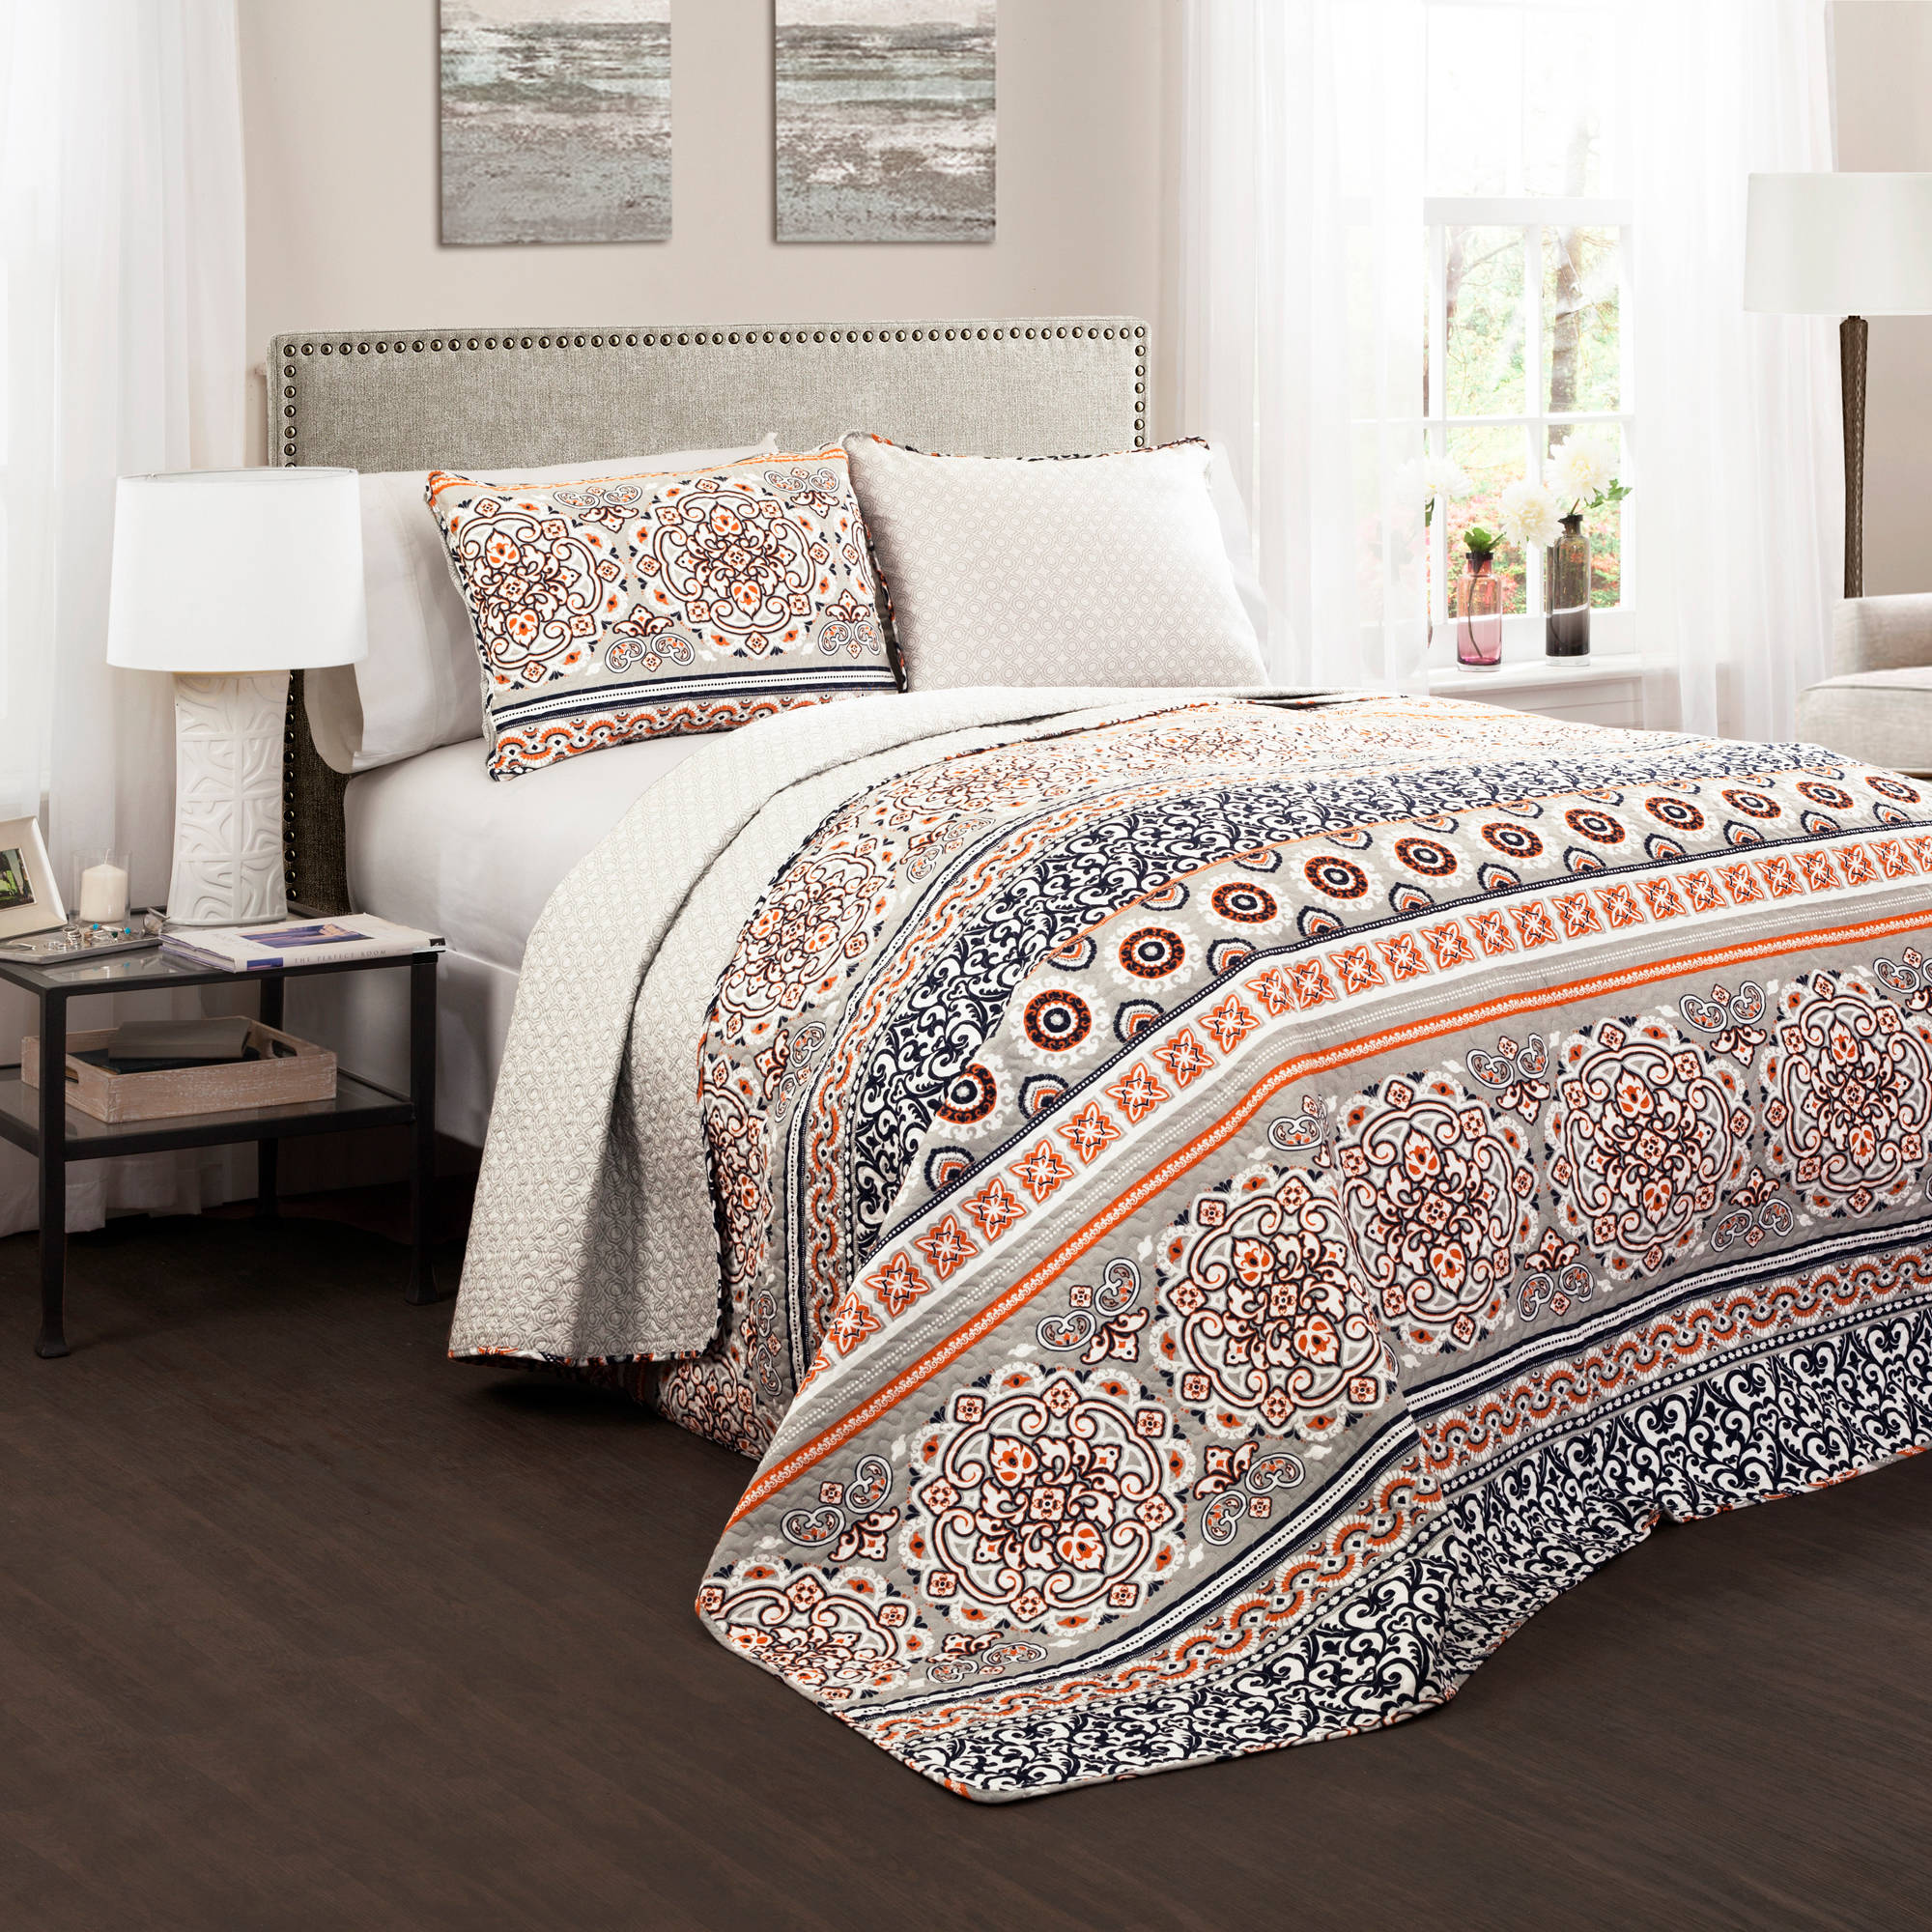 Nesco Quilt Navy Coral 3 Piece Set King Walmart